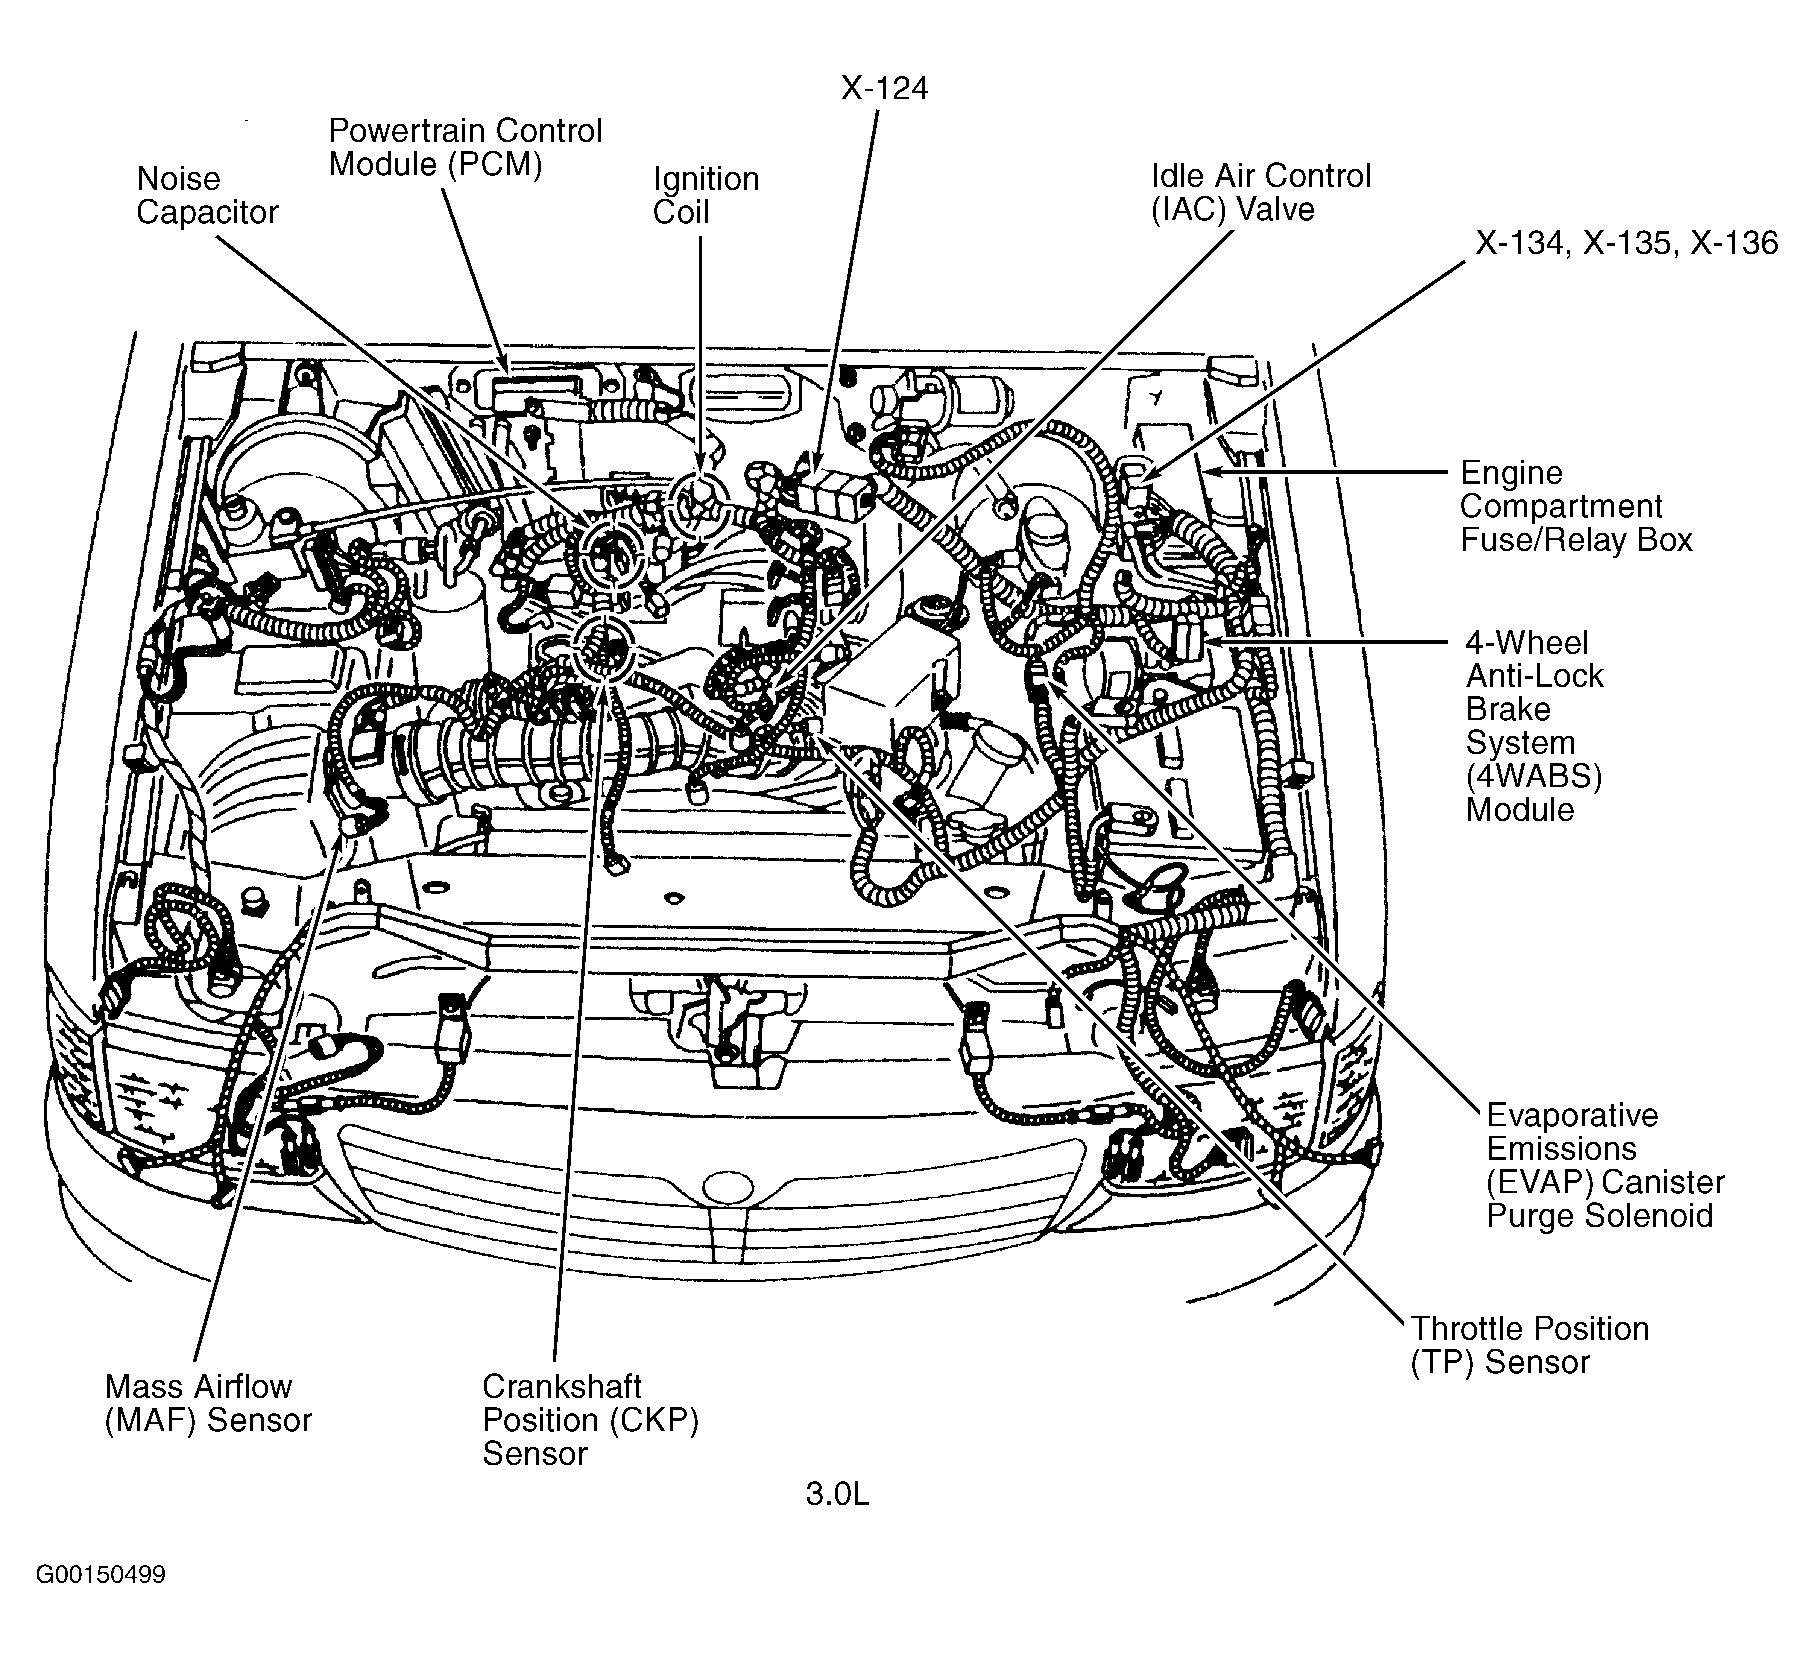 94 toyota Corolla Engine Diagram 1993 toyota Corolla Fuse Cover Diagram Of 94 toyota Corolla Engine Diagram